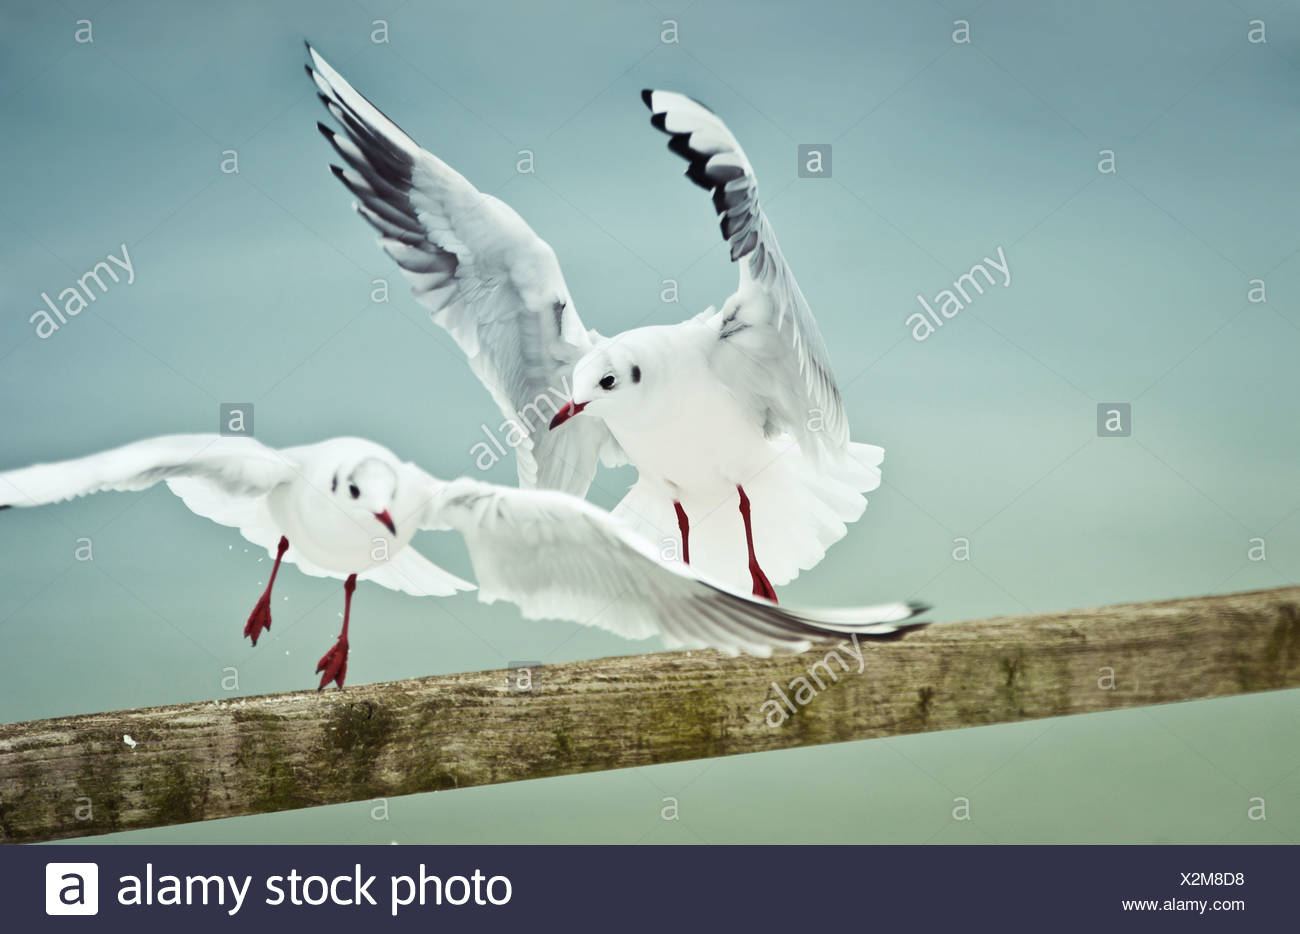 confrontation,rivalry,flying,seagull - Stock Image